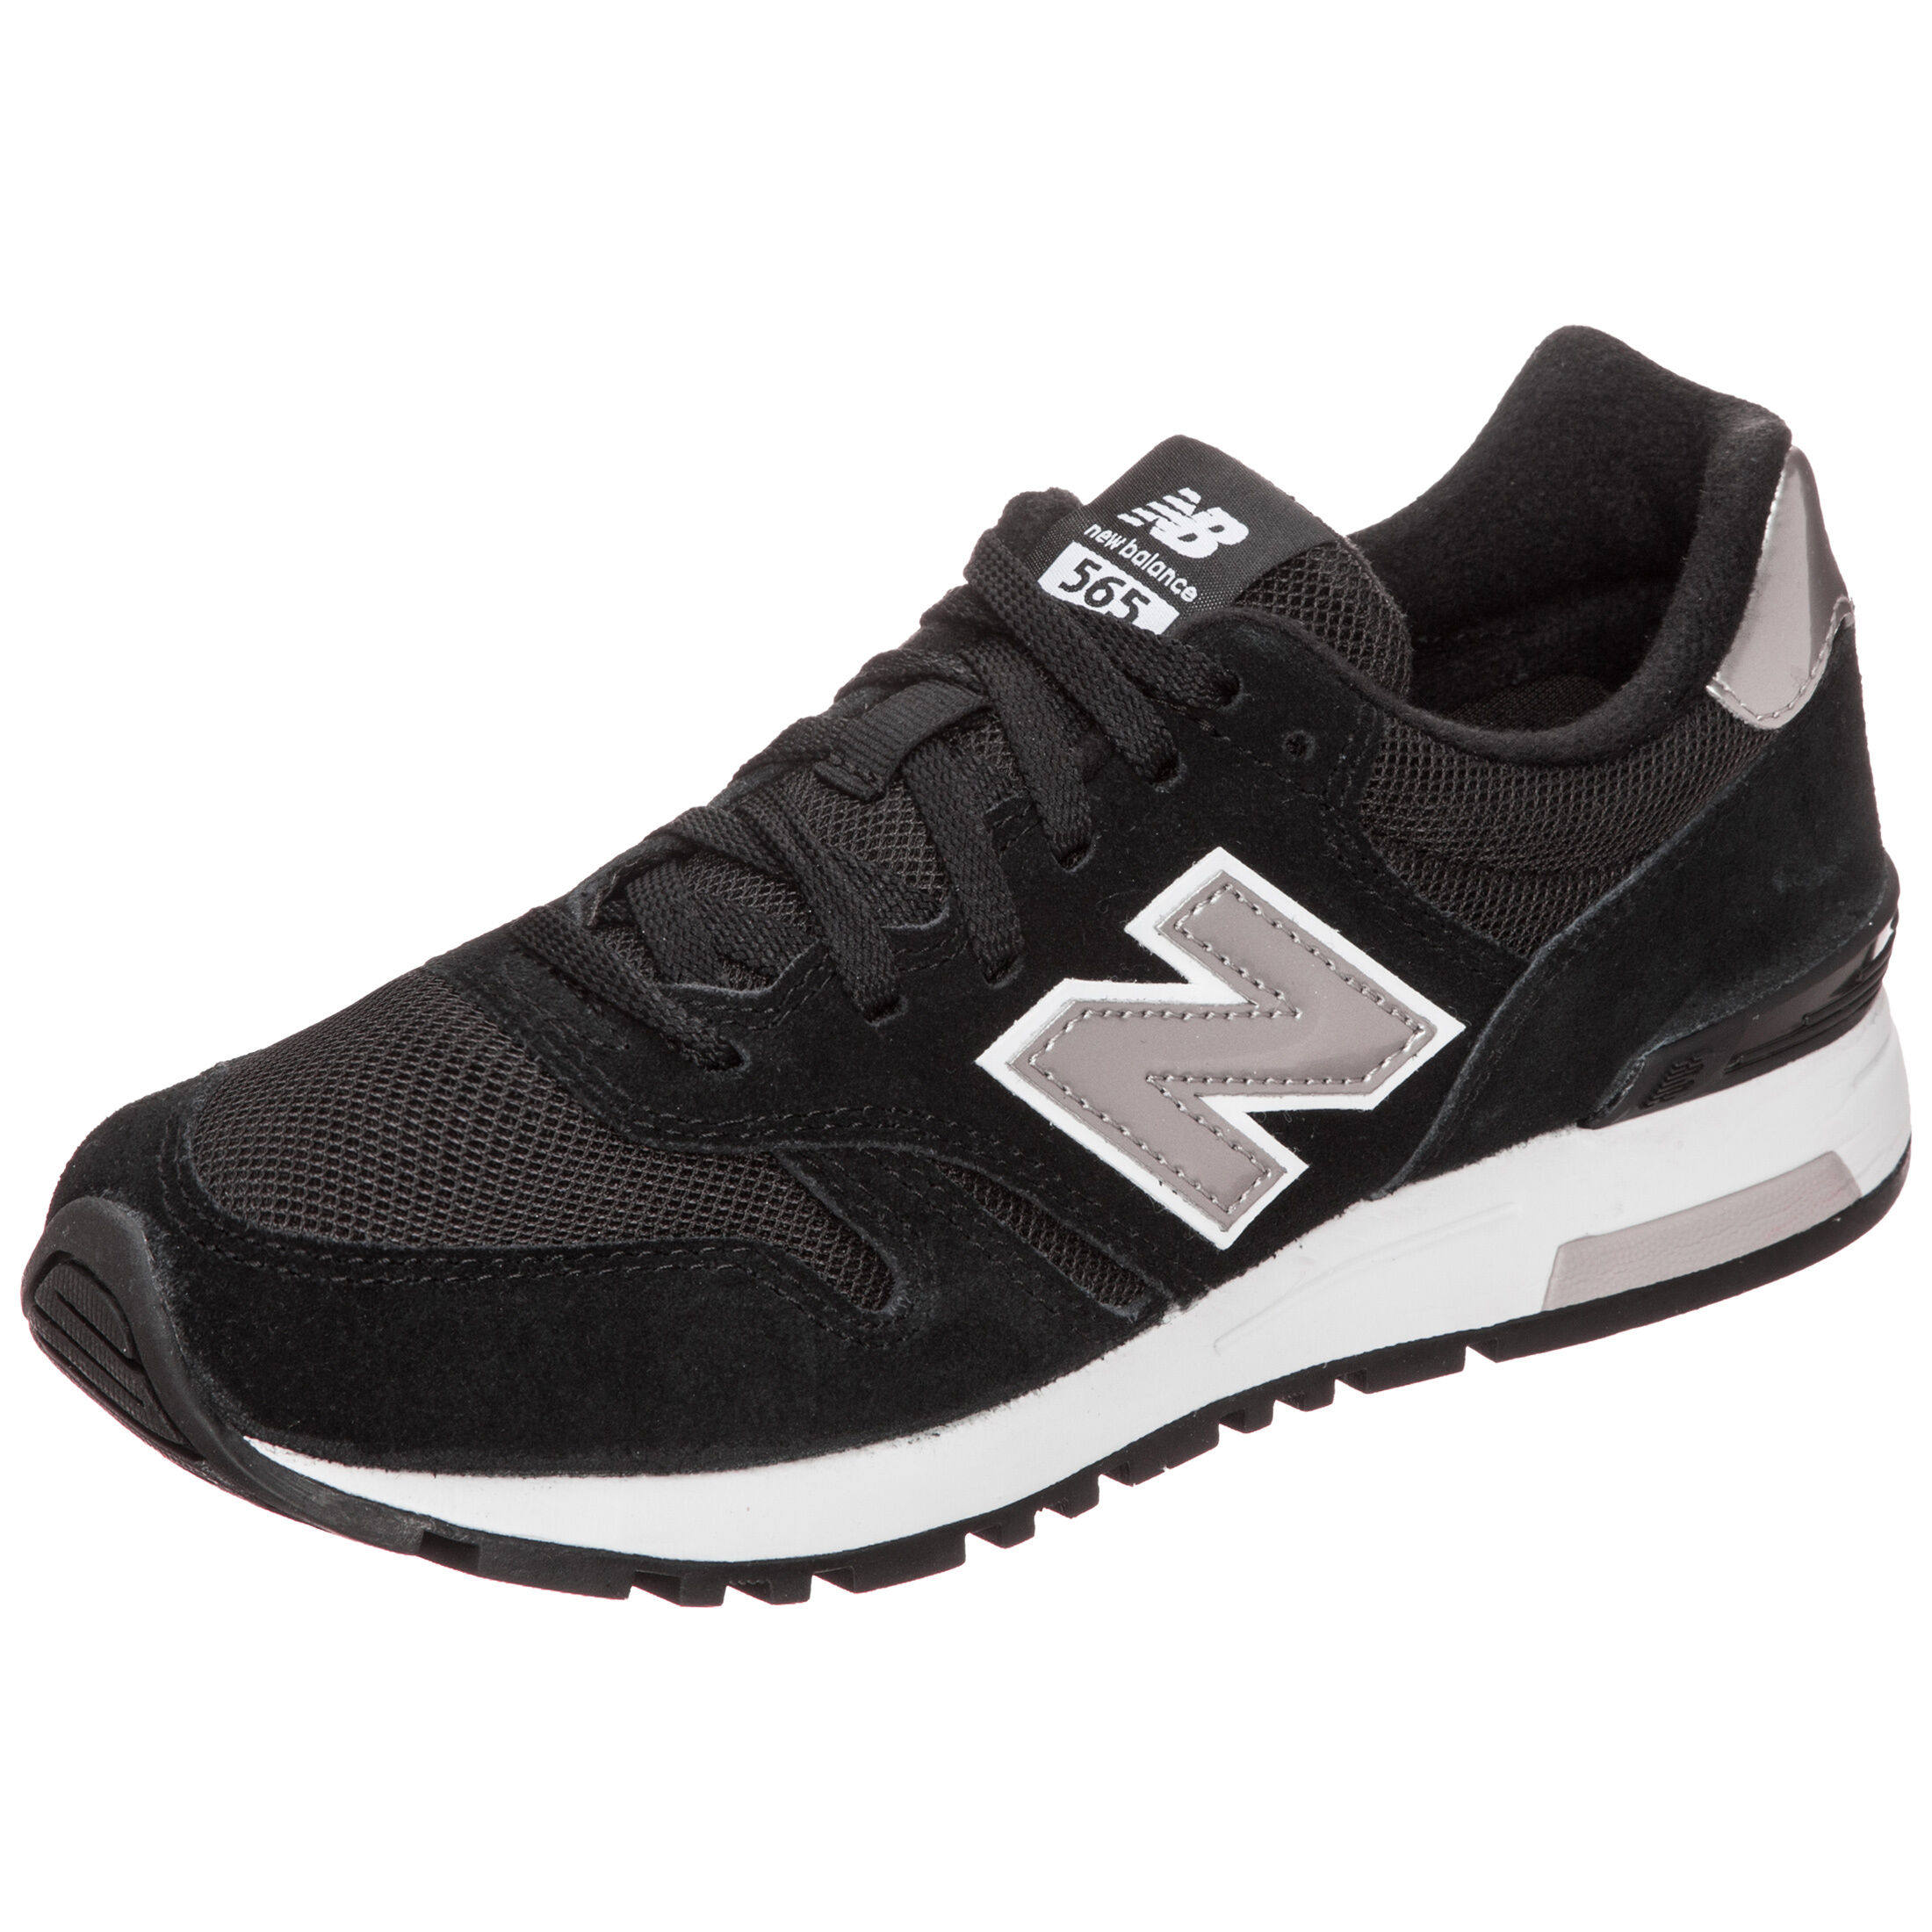 New Balance Shop | bei OUTFITTER